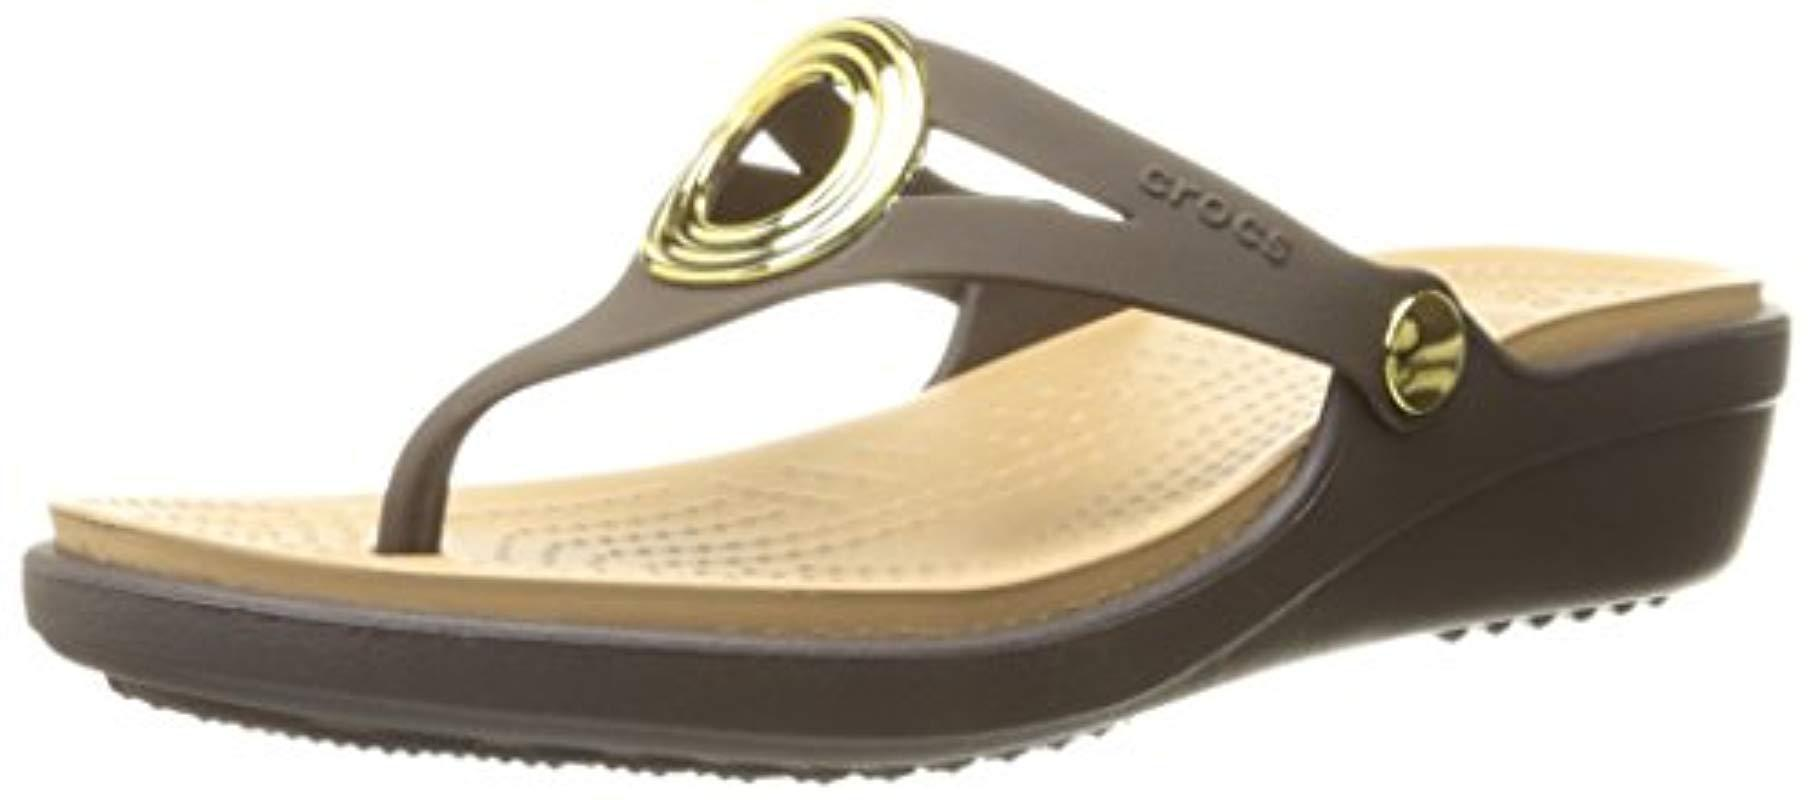 fdfc521fd2c4f Lyst - Crocs™ Sanrah Beveled Circle Wedge Sandal in Metallic - Save ...